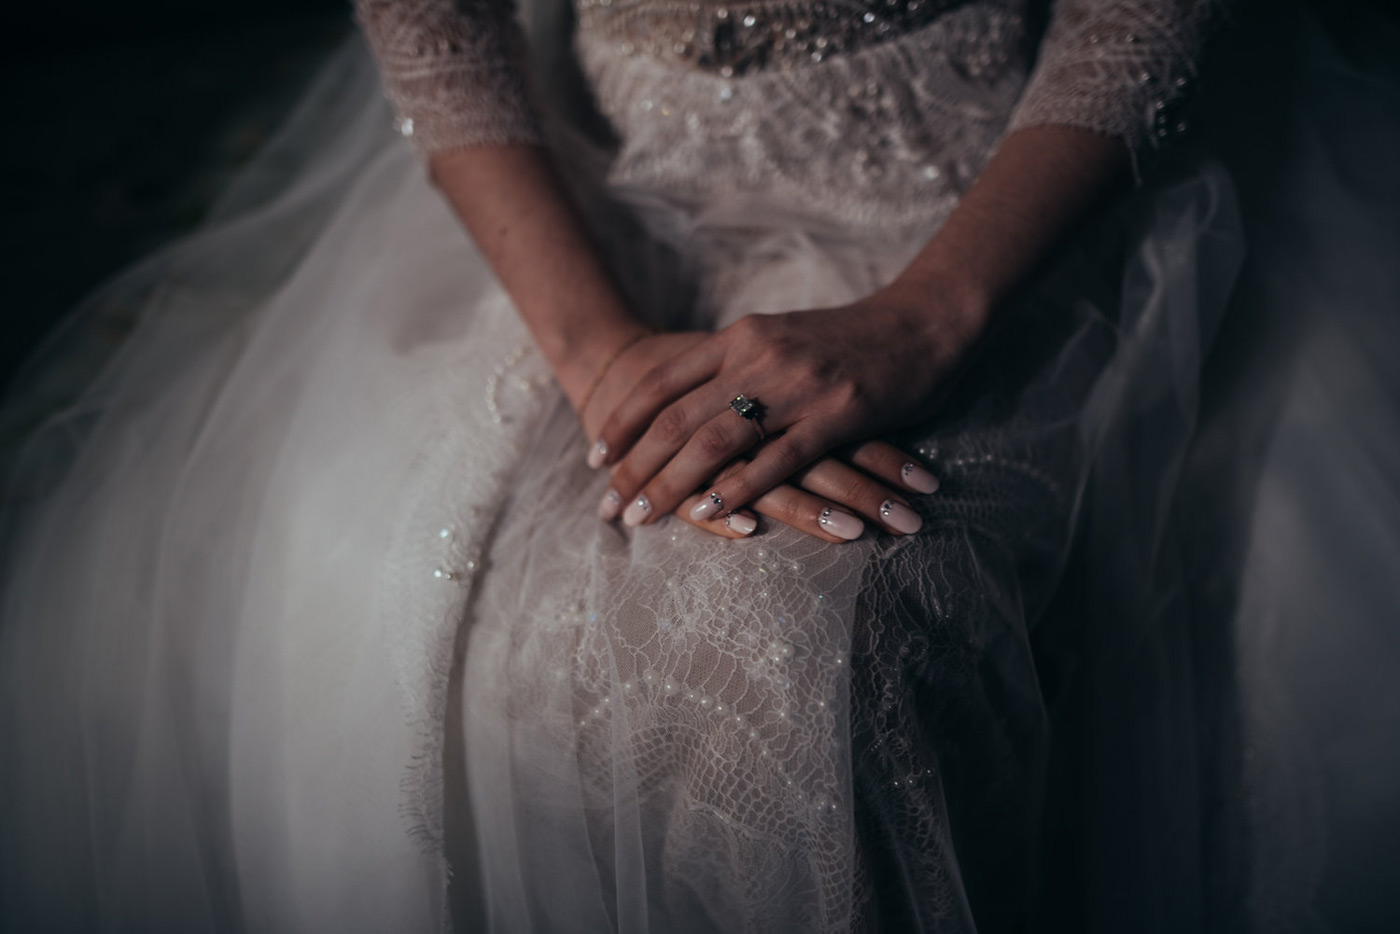 close up photo of the brides gown with pearl beading and her light pink nails